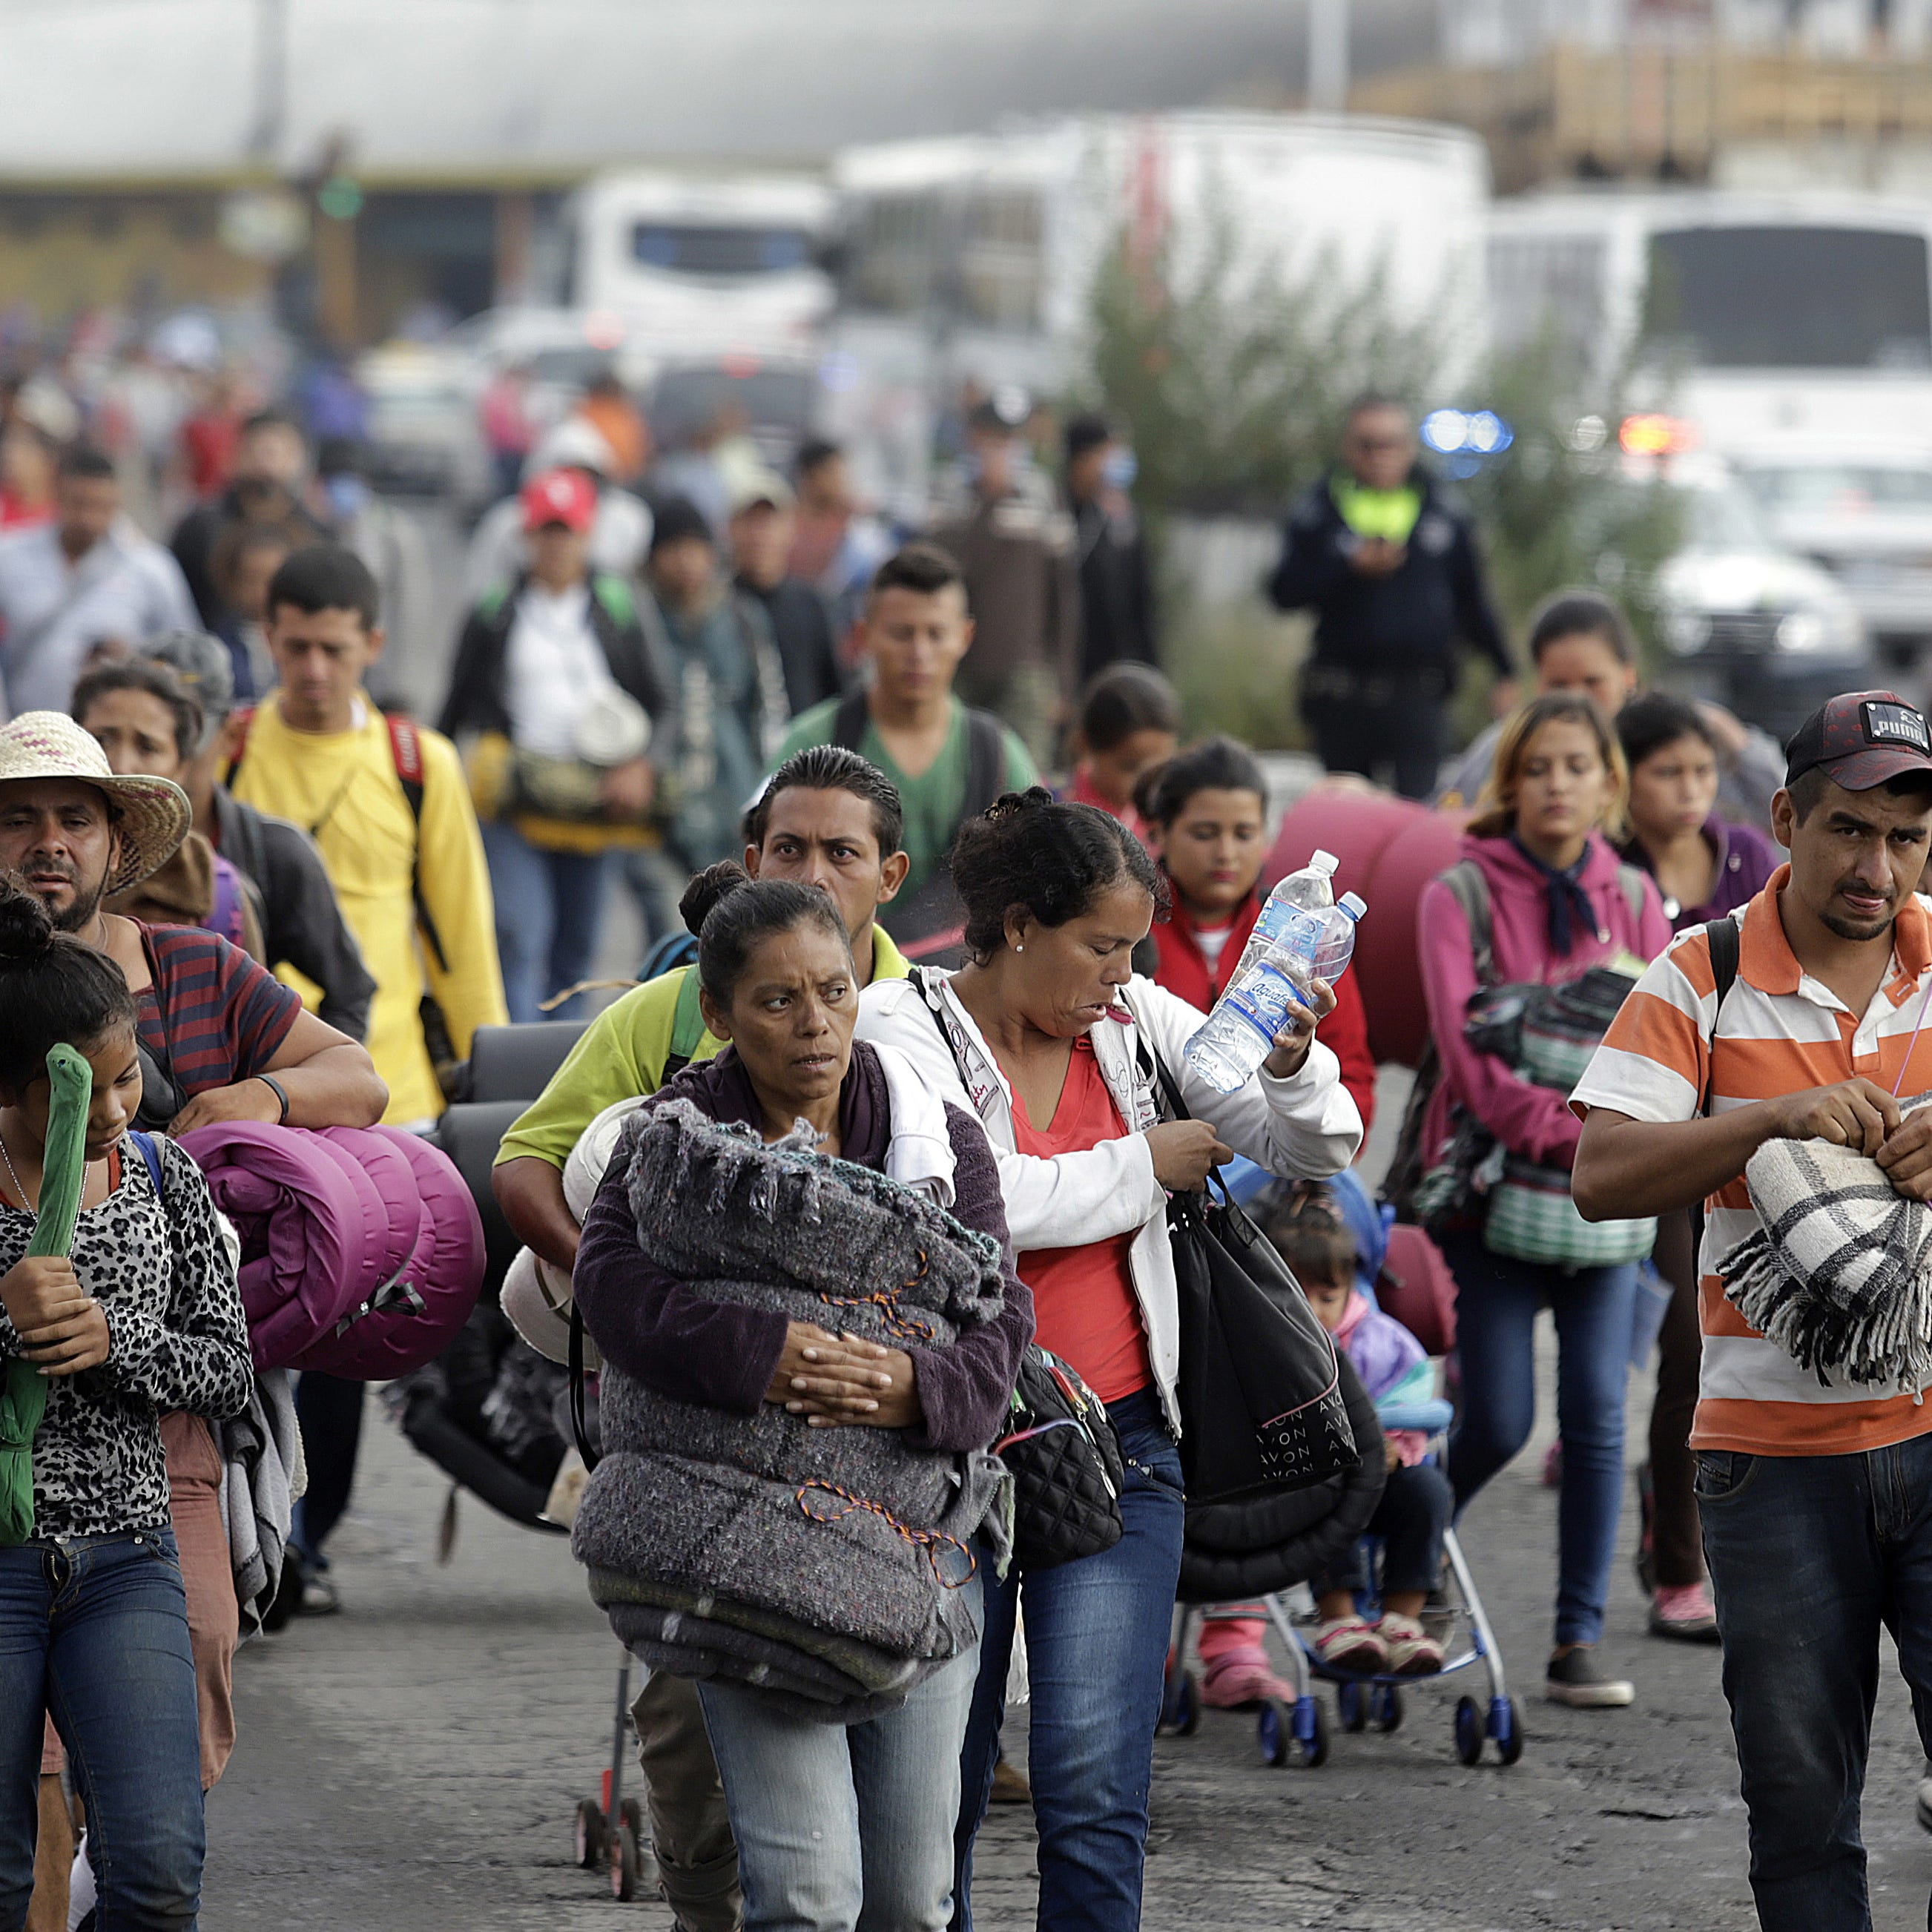 Christians, meet the caravan